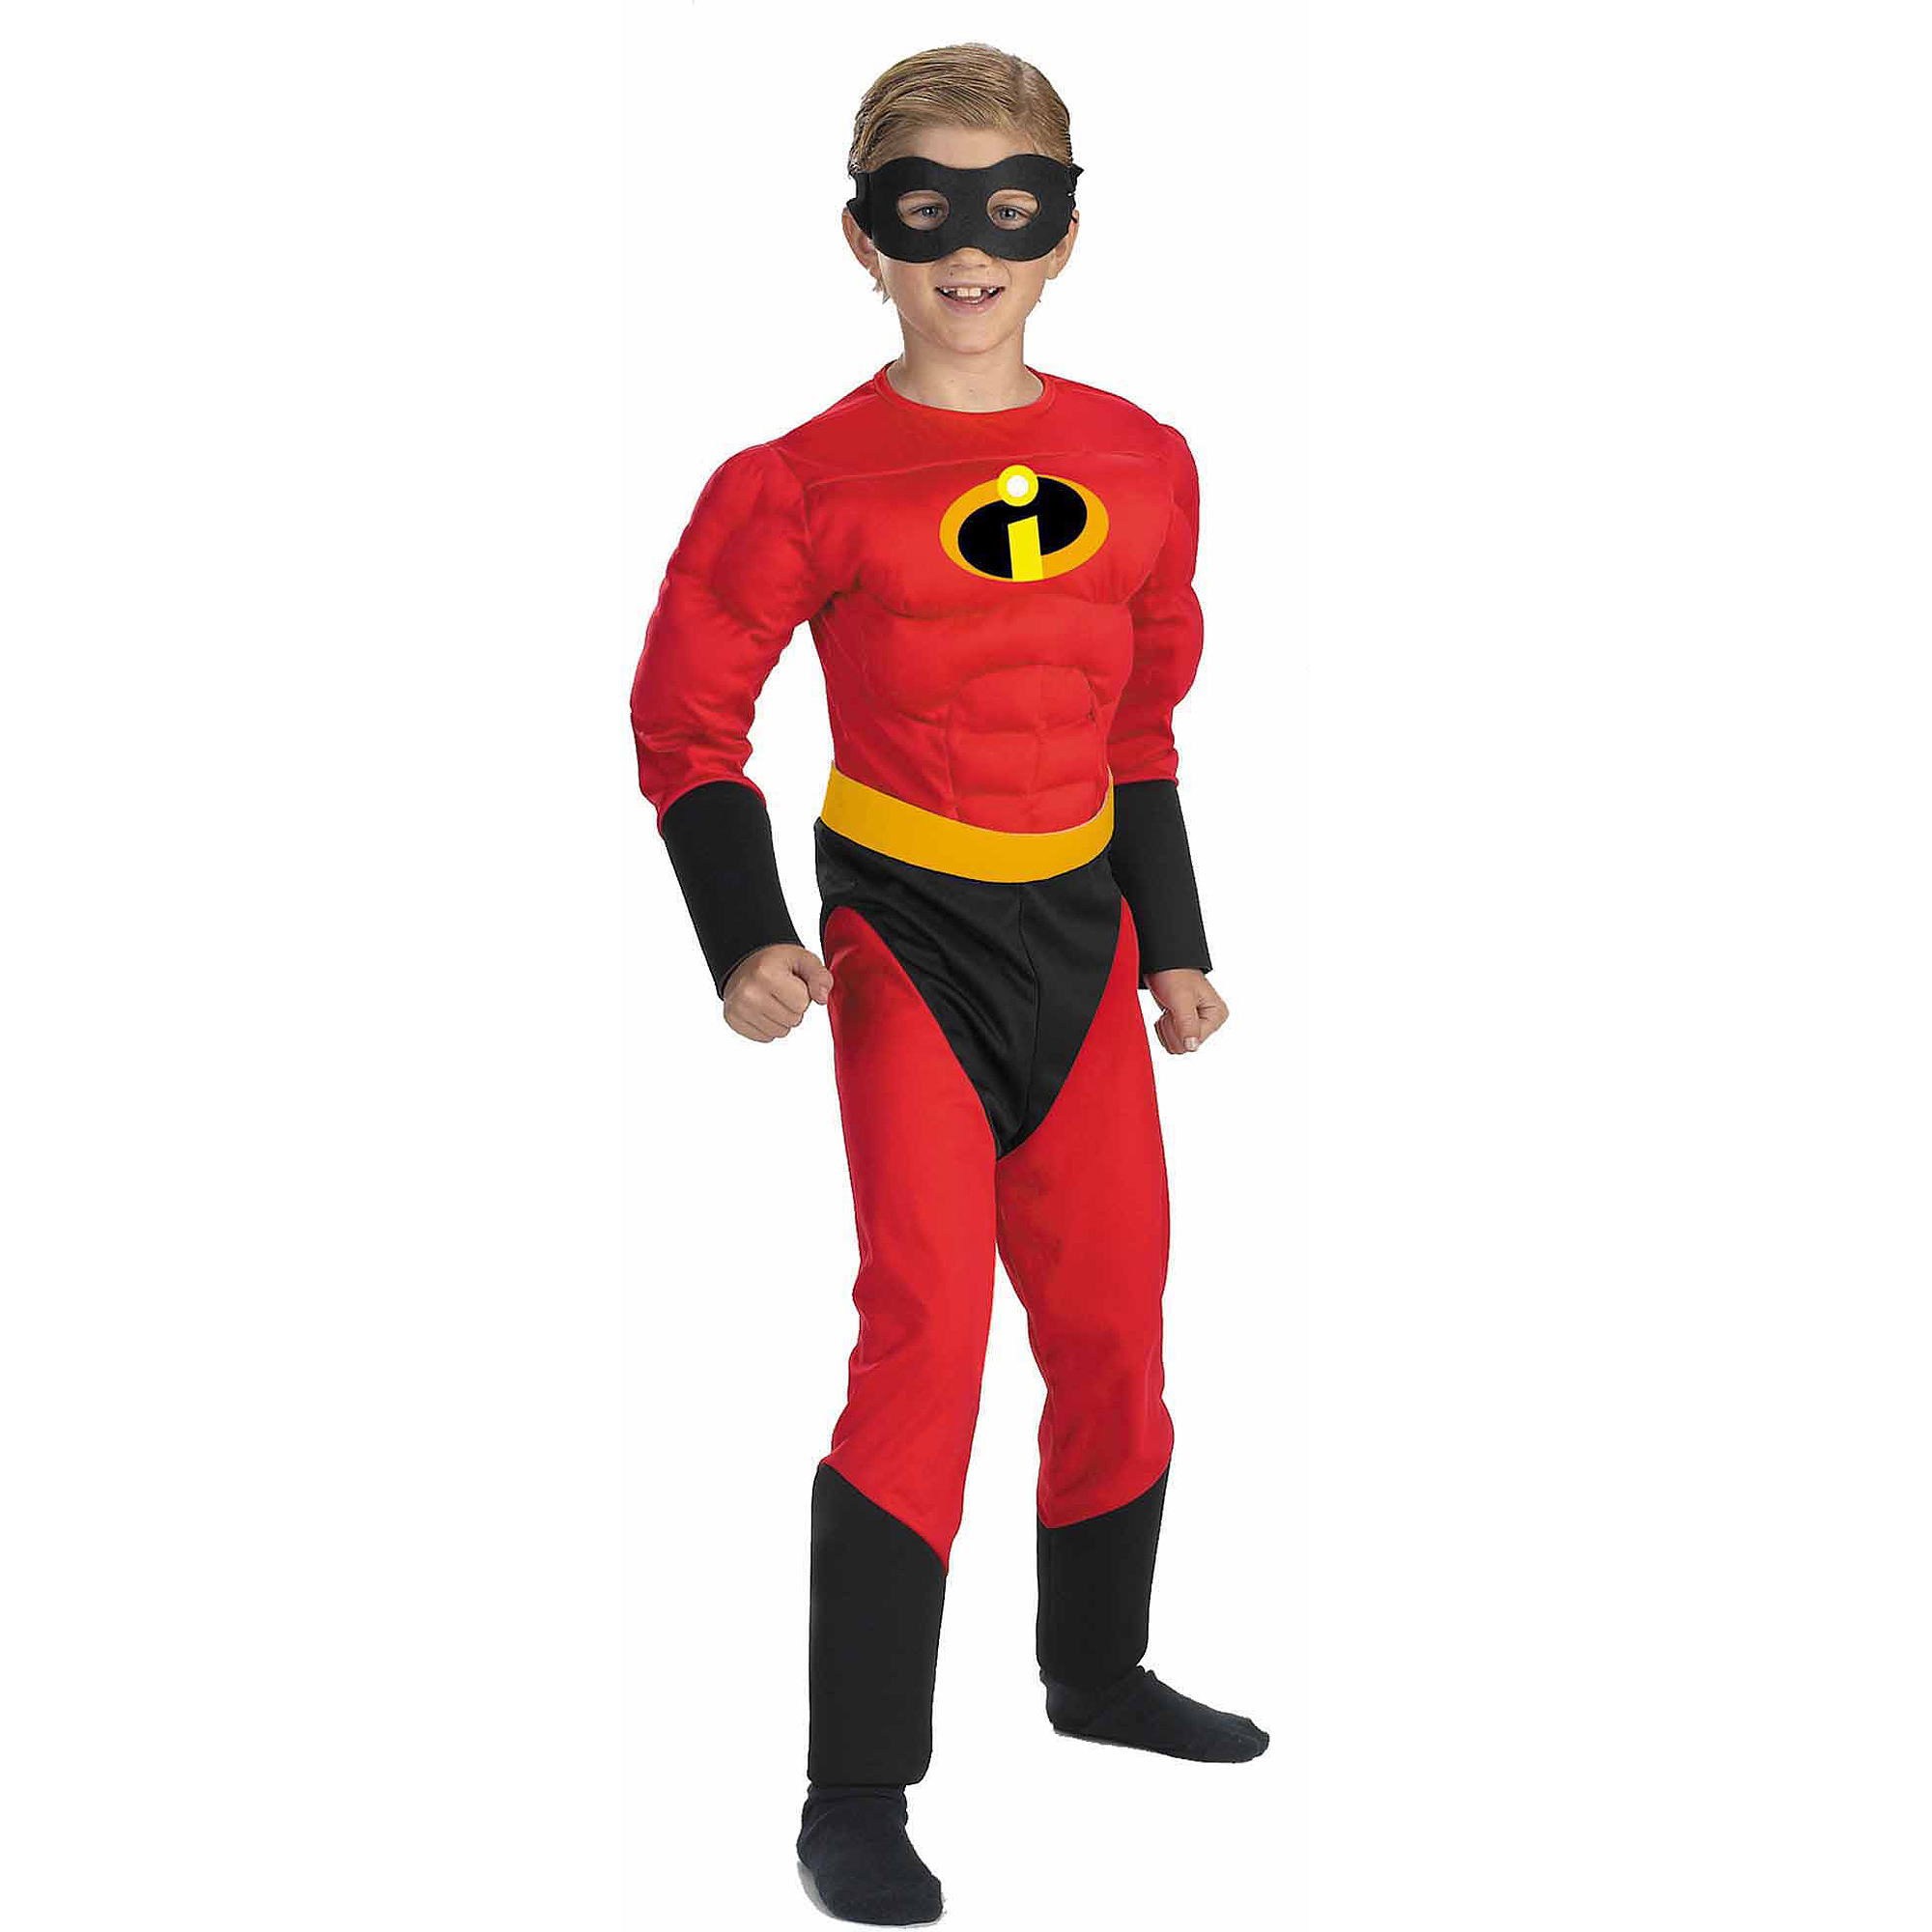 Mr. Incredible Muscle Child Halloween Costume